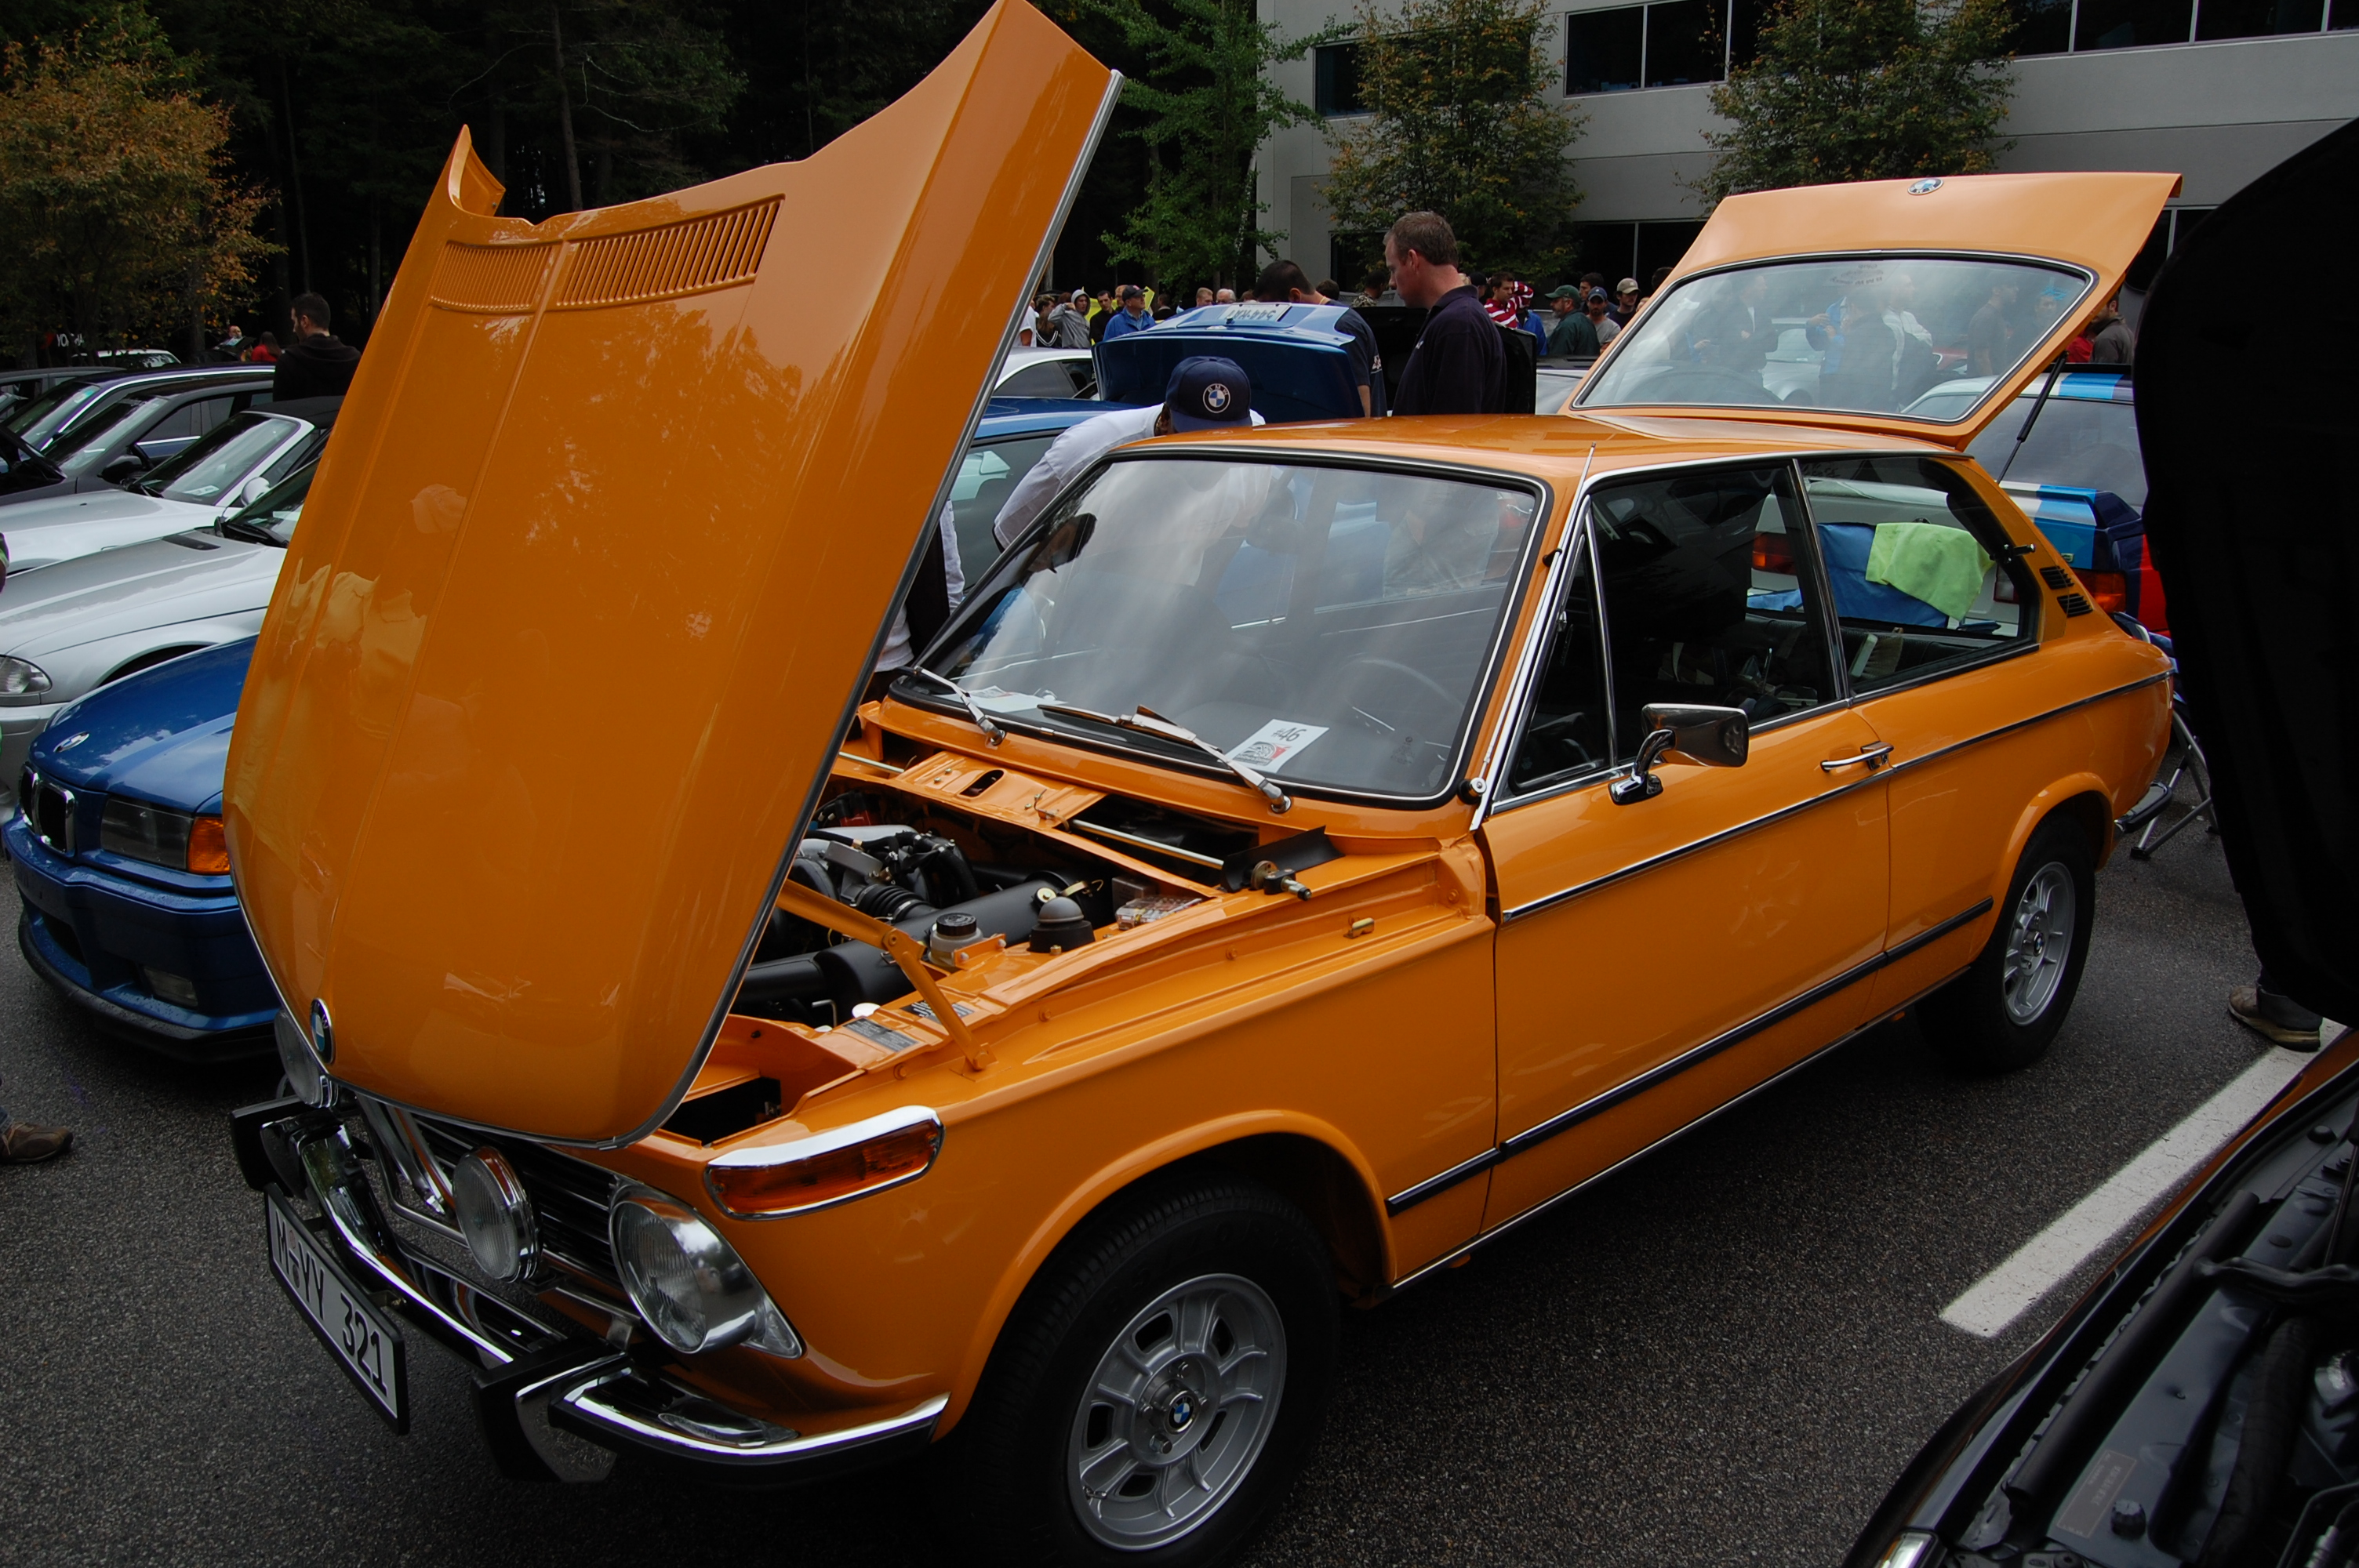 BMW 2002 tii Touring | Flickr - Photo Sharing!